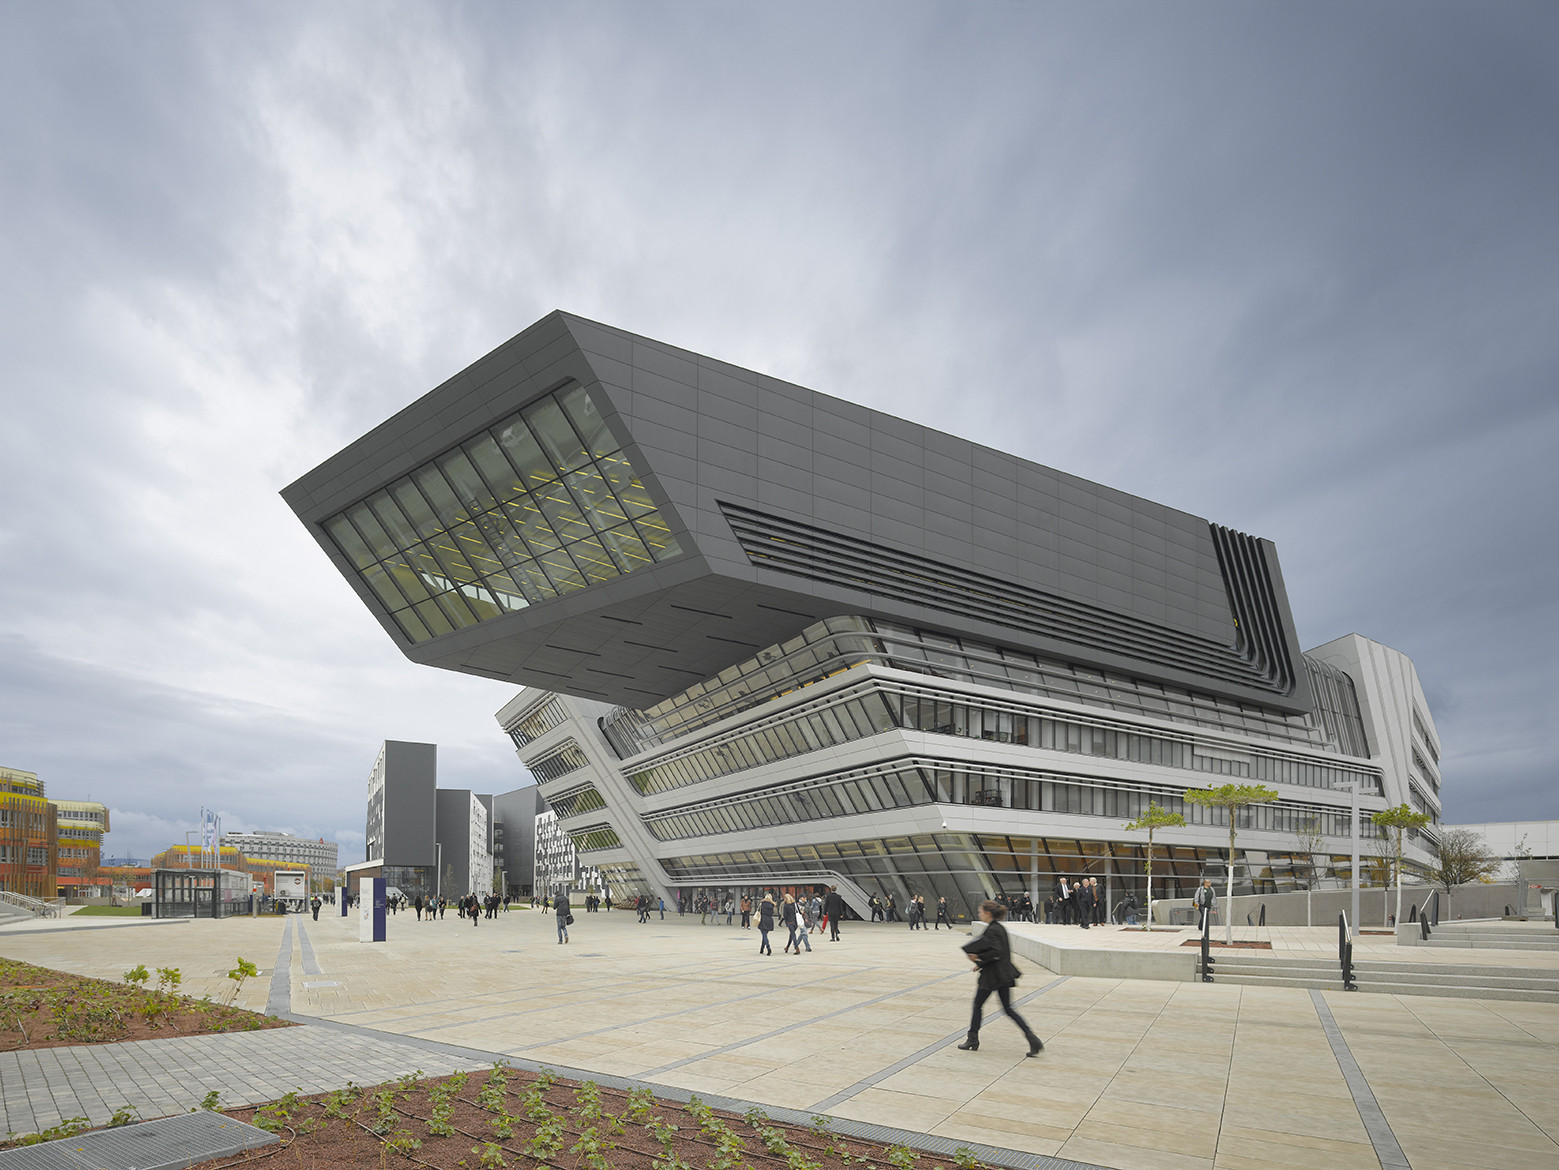 176-Pound Concrete Slab Falls From Year-Old Zaha Hadid Library, Library and Learning Centre University of Economics Vienna / Zaha Hadid Architects. Image © Roland Halbe